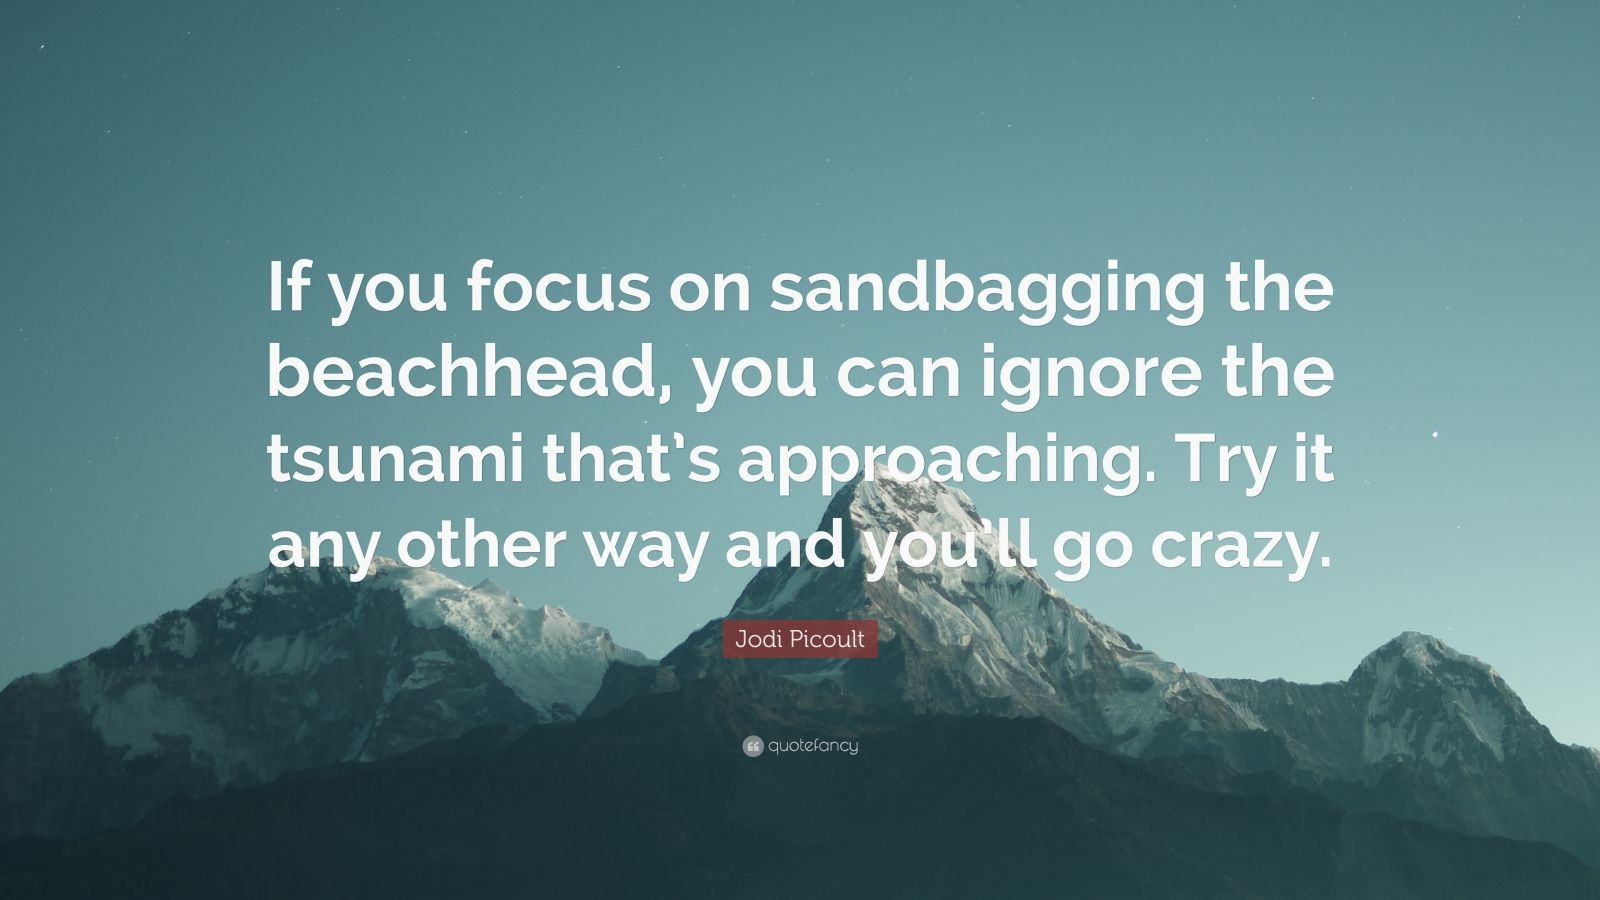 """Jodi Picoult Quote: """"If you focus on sandbagging the beachhead, you can ignore the tsunami that's approaching. Try it any other way and you'll go crazy."""""""